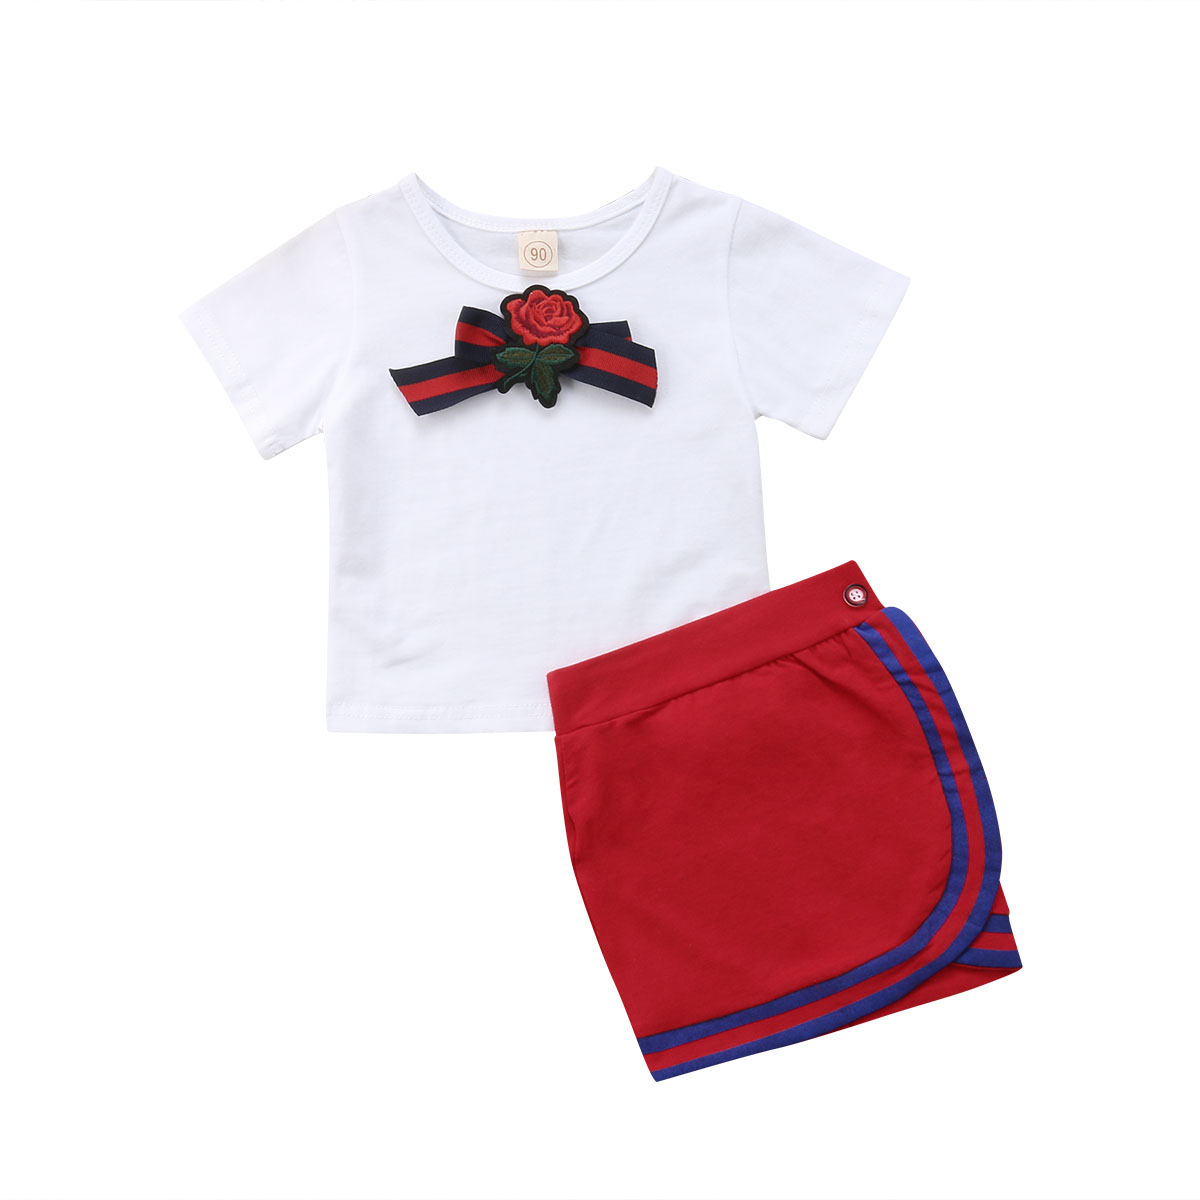 Newborn Kids Baby Girls Clothes Sets Bow Flower Tie Tops Short Sleeve T-shirt Skirts 2pcs Cotton Outfits Set Girl 1-5T